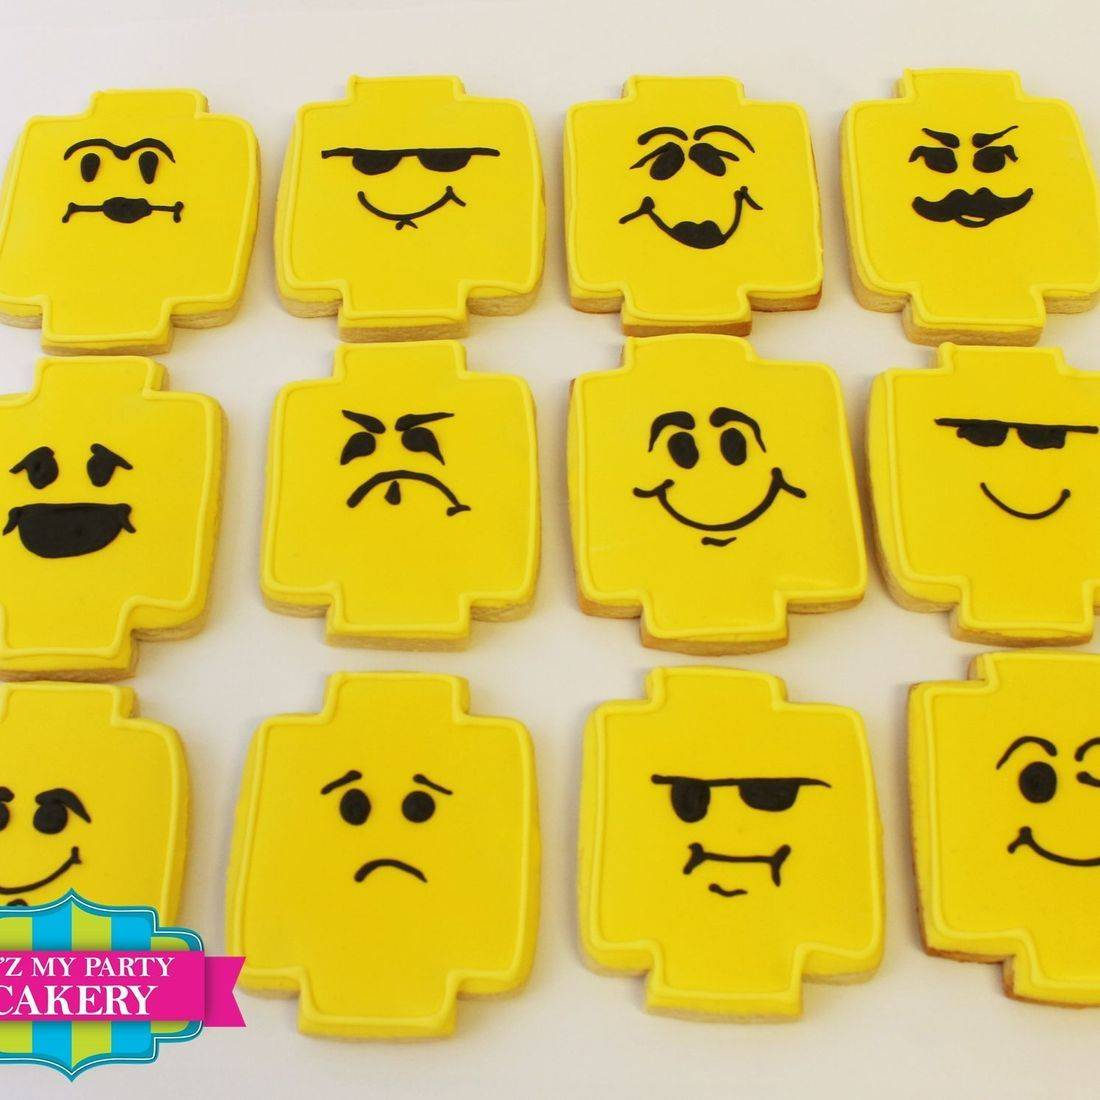 Lego Emoji cookies Milwaukee